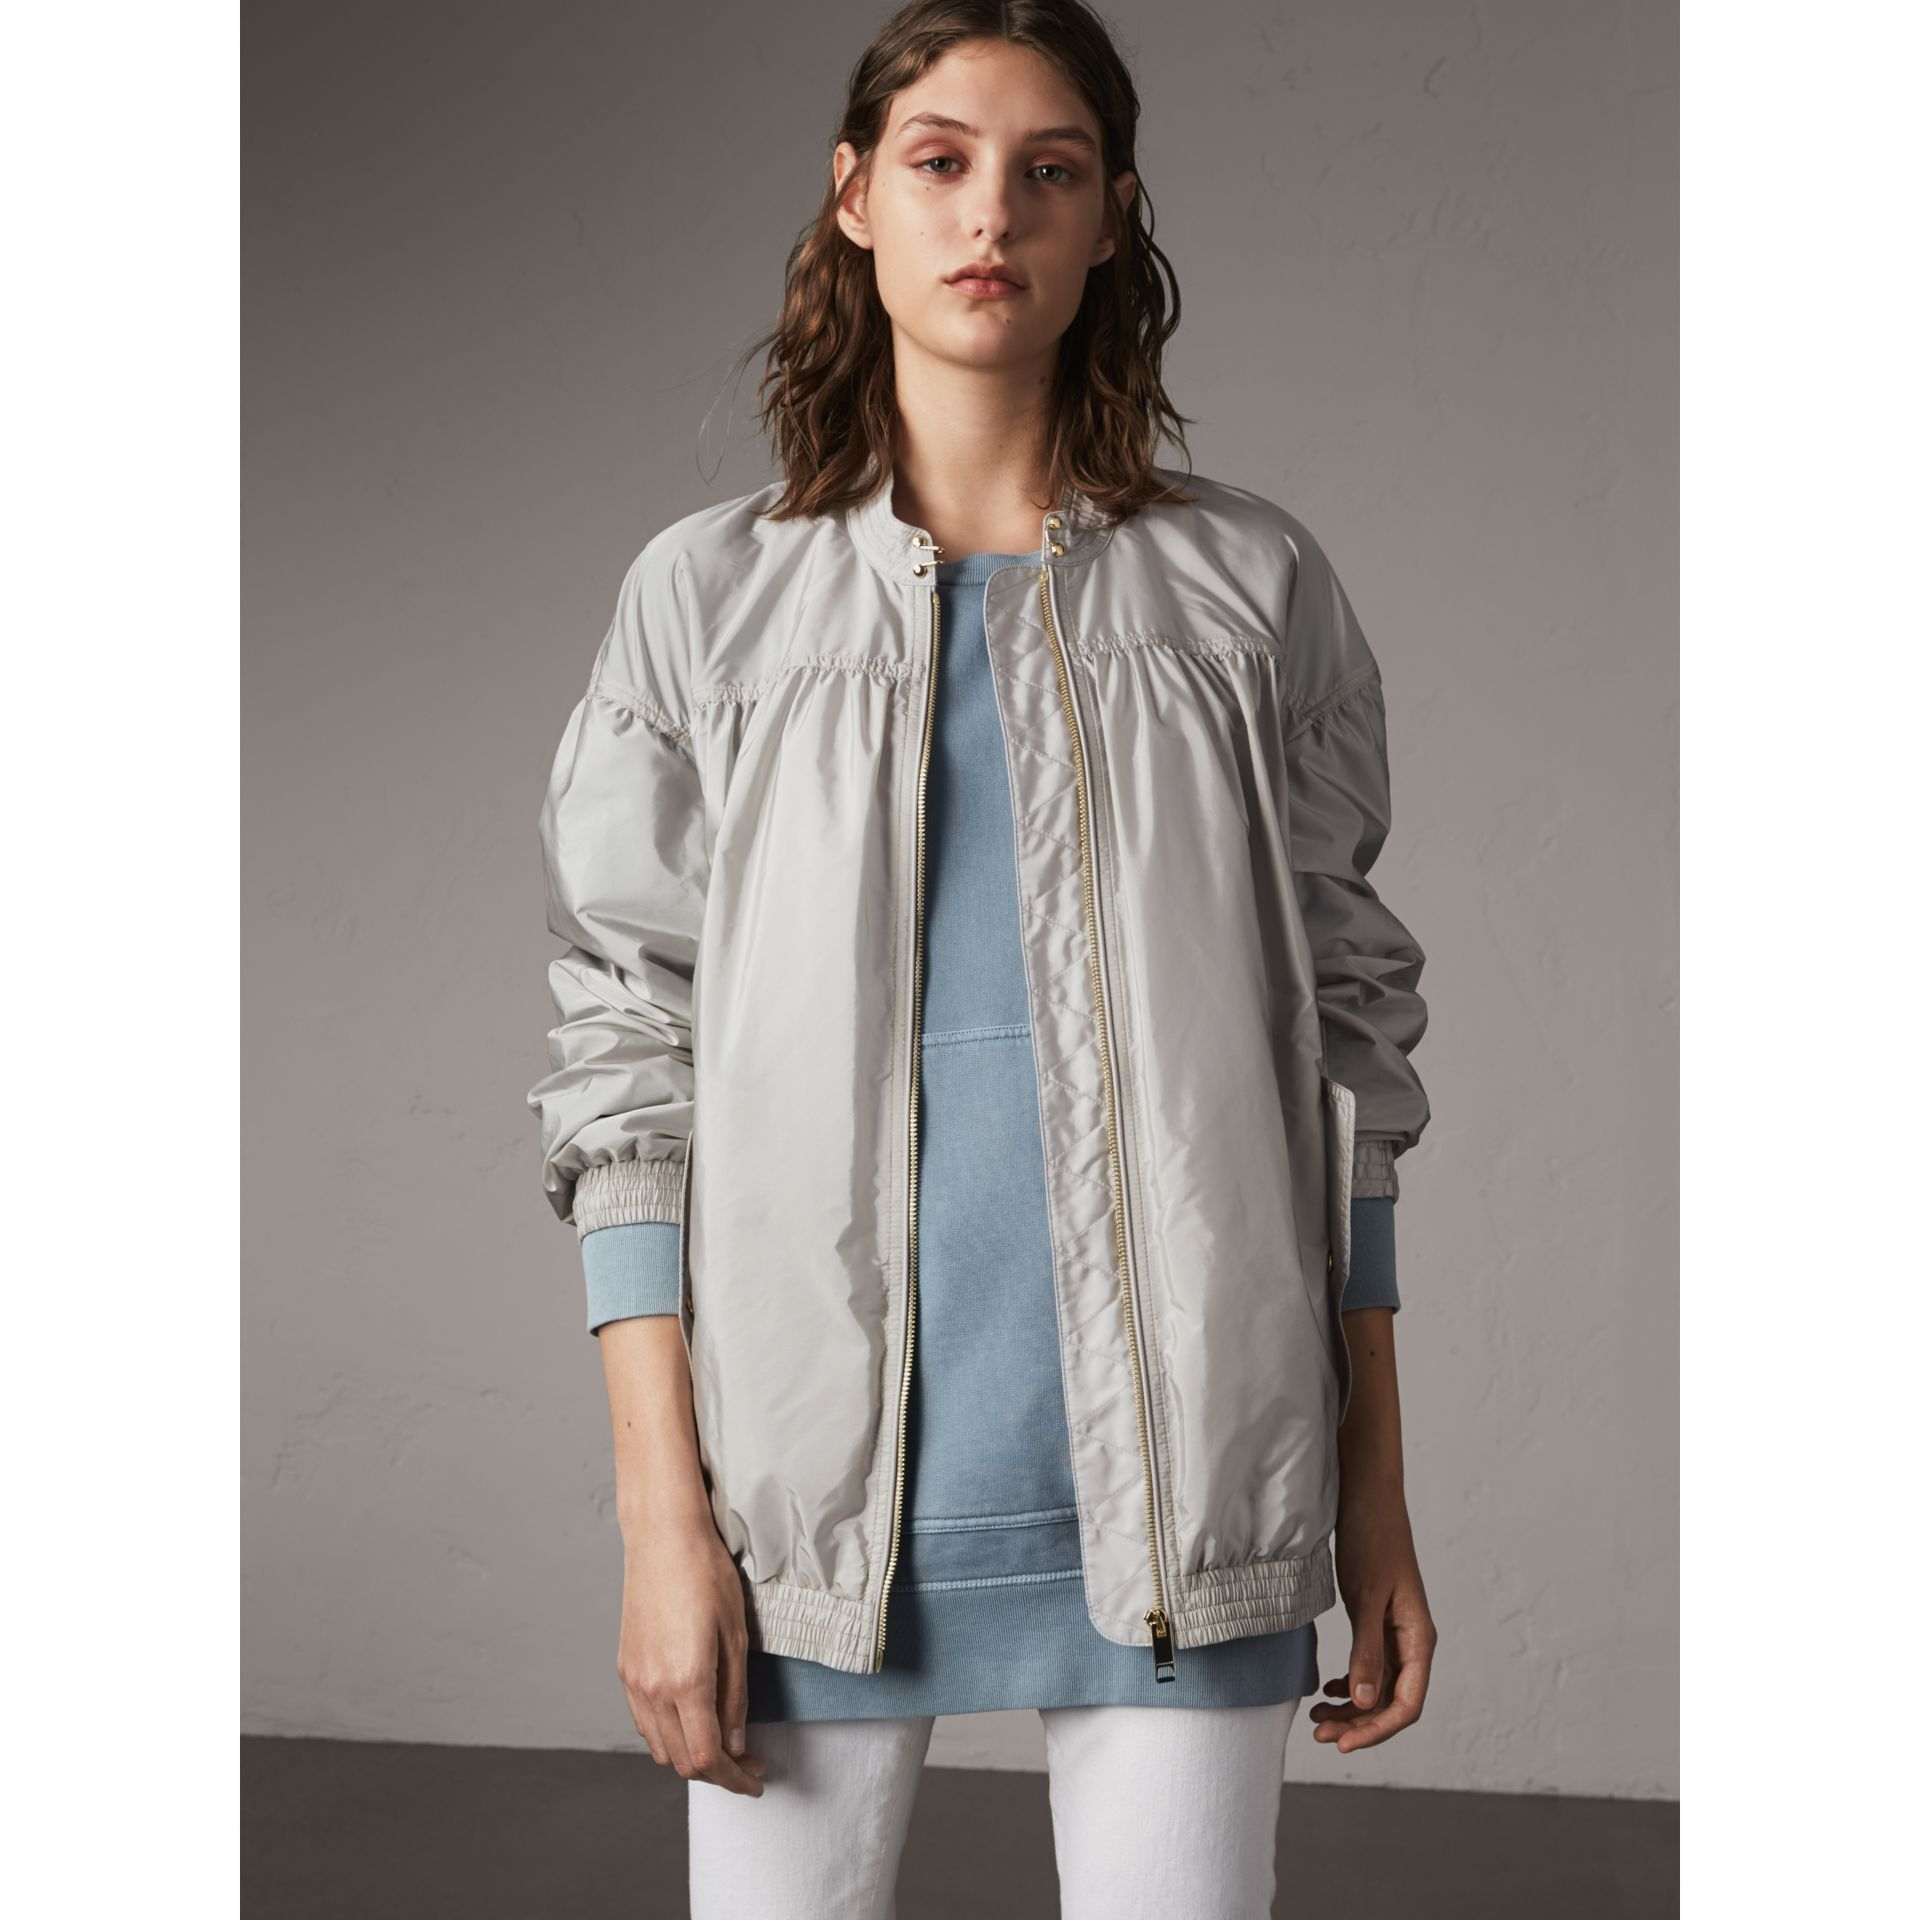 Ruched Showerproof Jacket in Pale Grey - Women | Burberry - gallery image 1